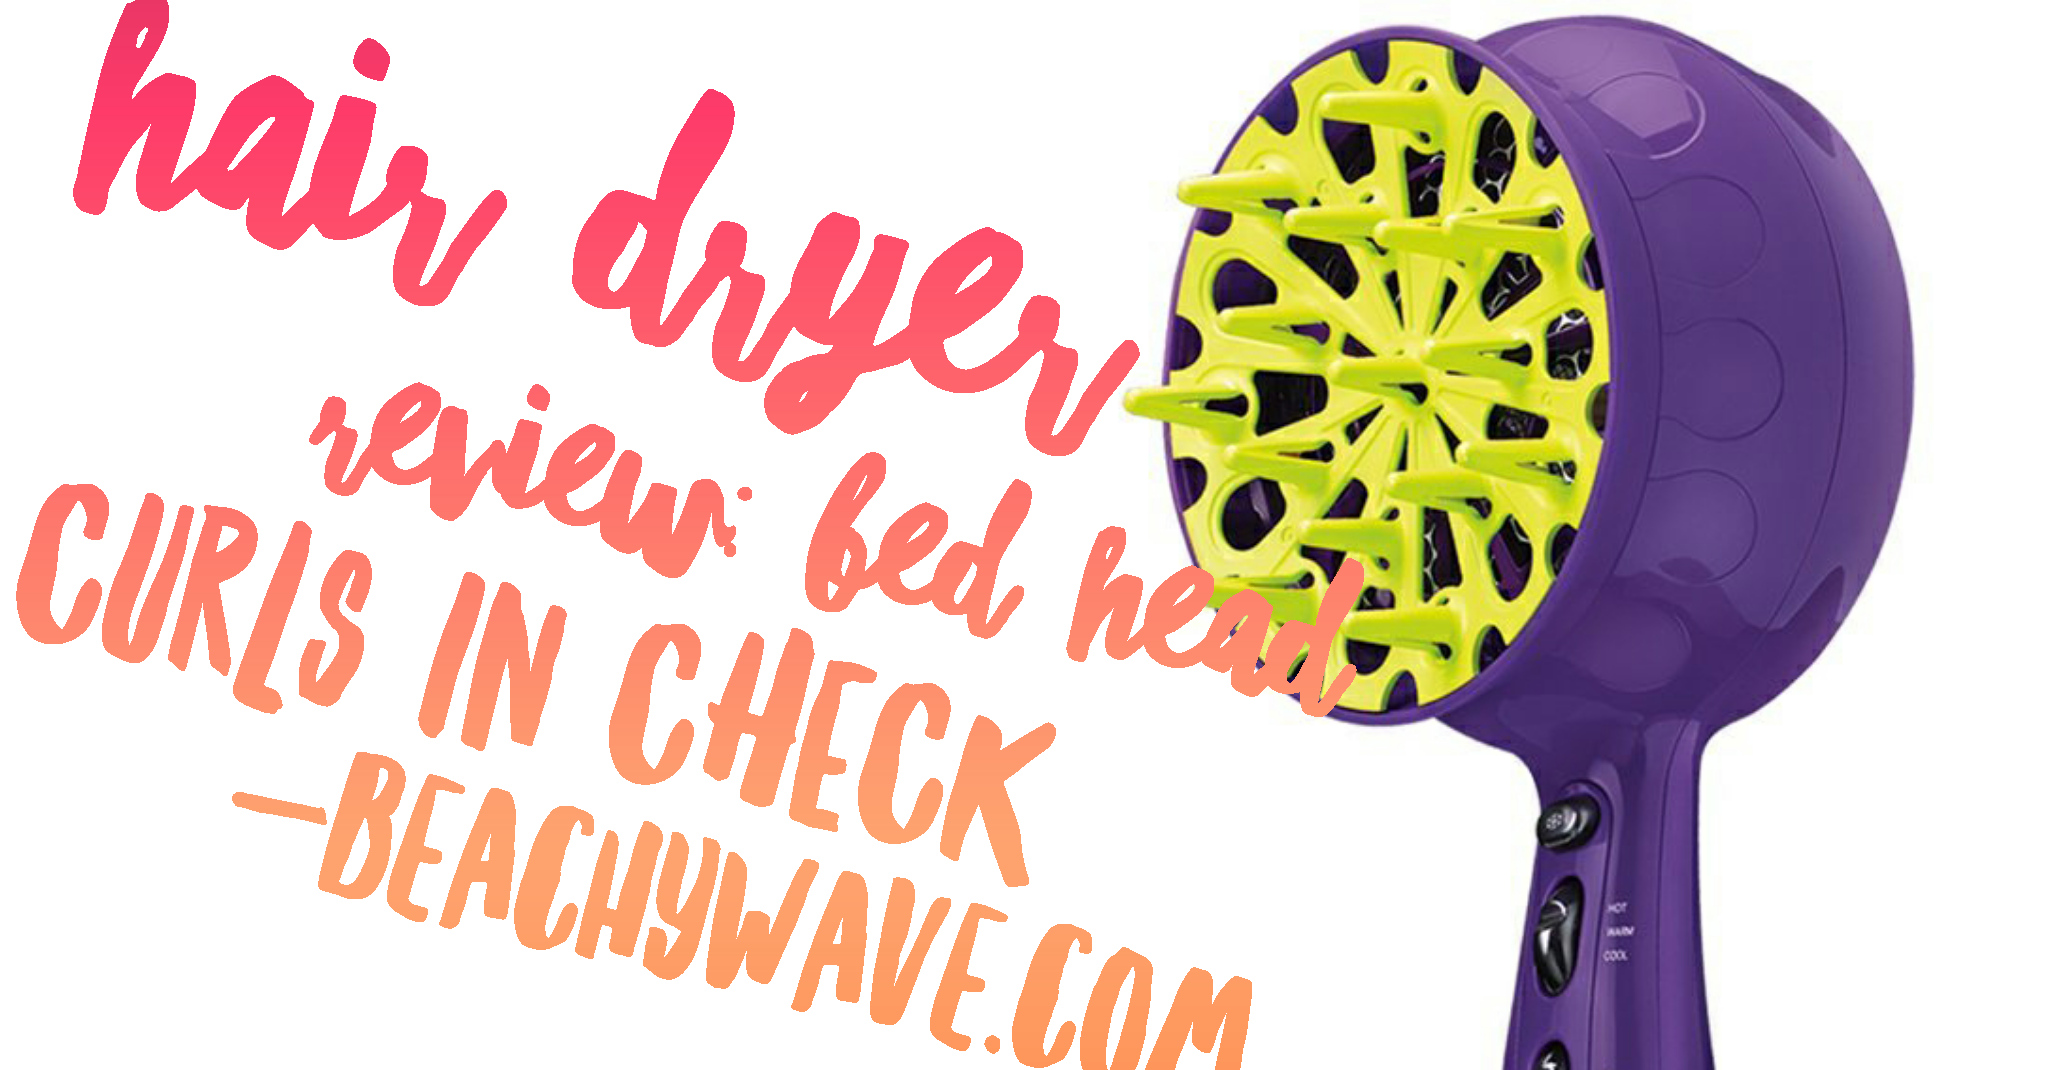 Bed Head Curls In Check Diffuser Hair Dryer Review